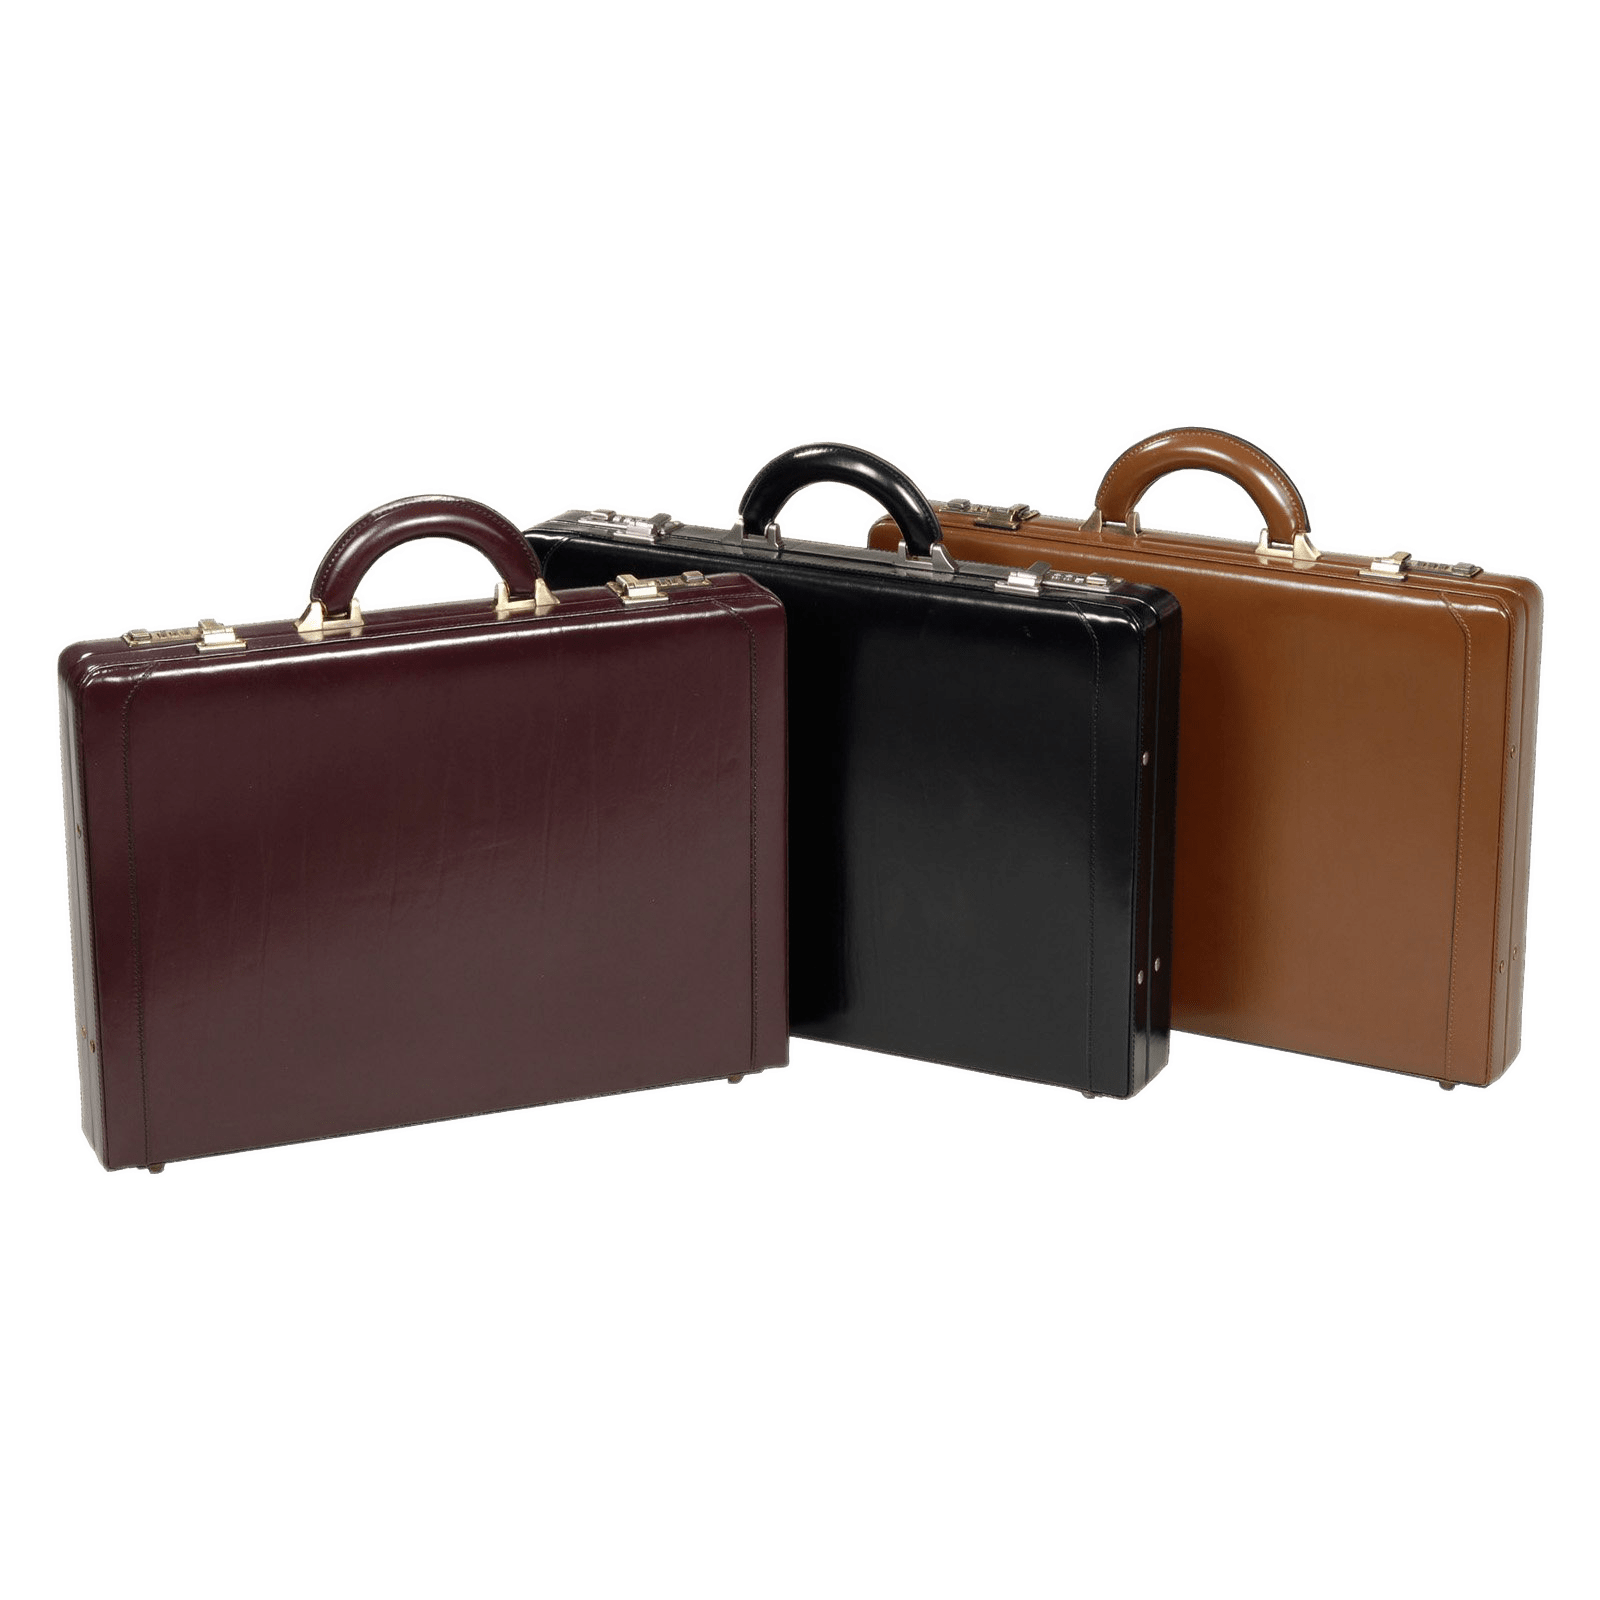 Briefcase transparent clear. Collection of briefcases png